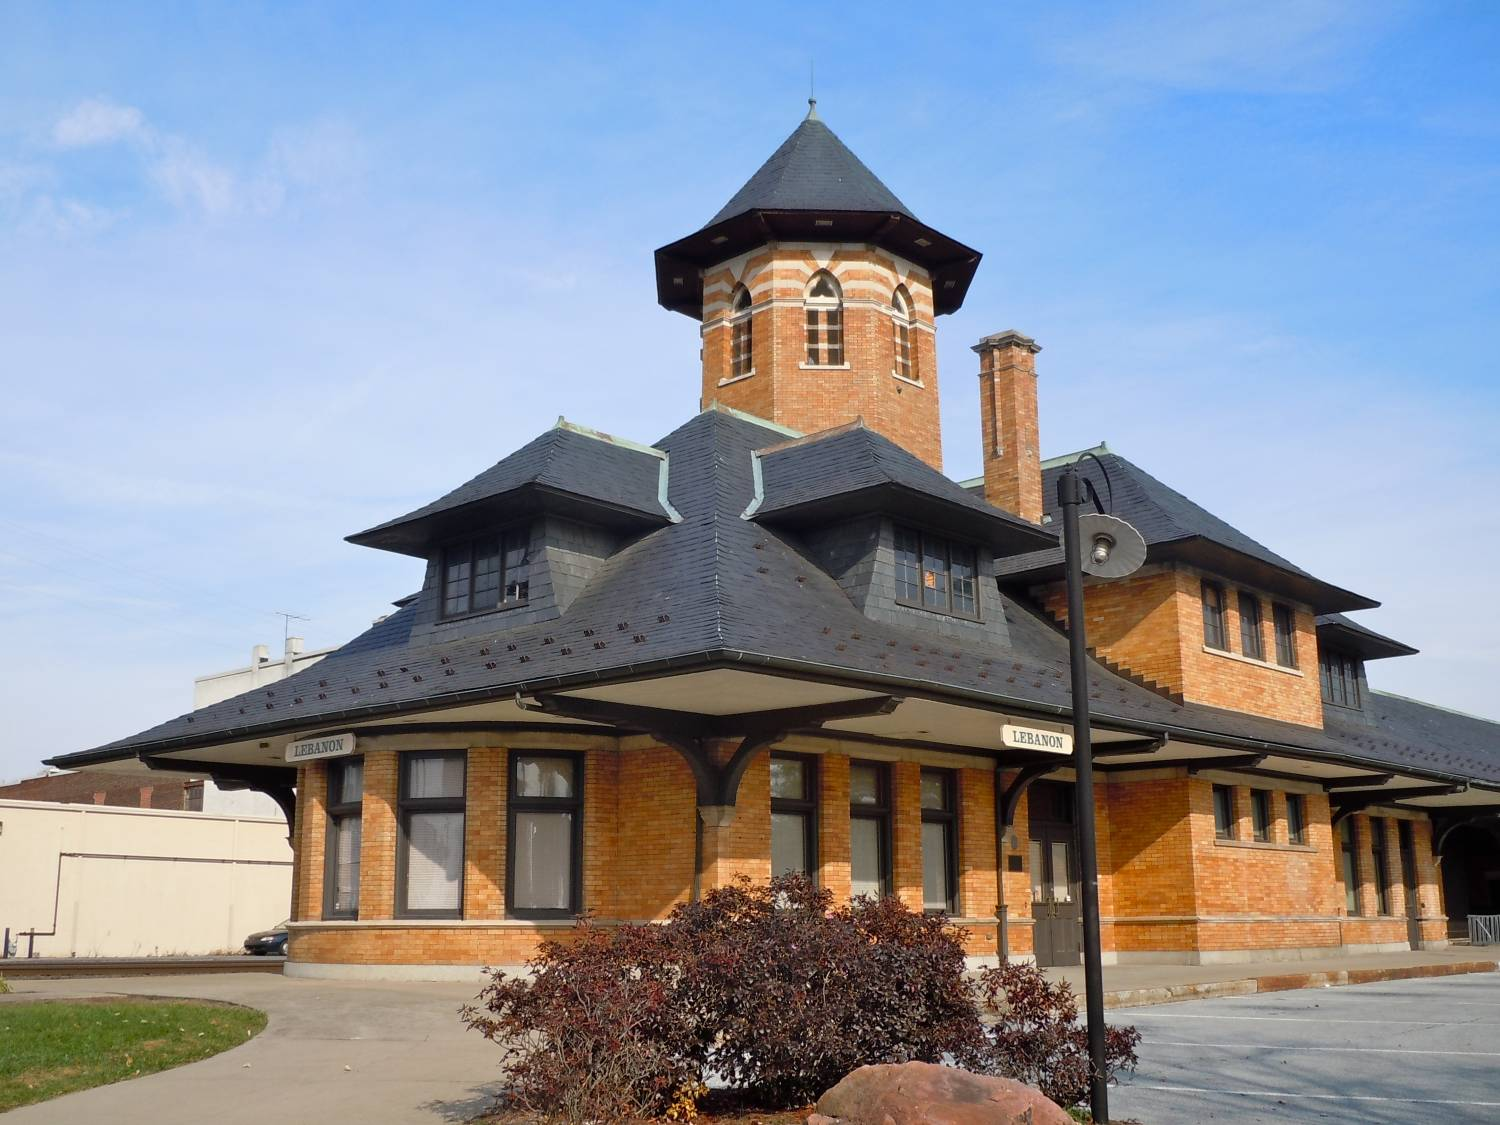 Lebanon - Reading Railroad station on Eighth Street - Photo Credit: By Smallbones - Own work, CC0, https://commons.wikimedia.org/w/index.php?curid=17360951